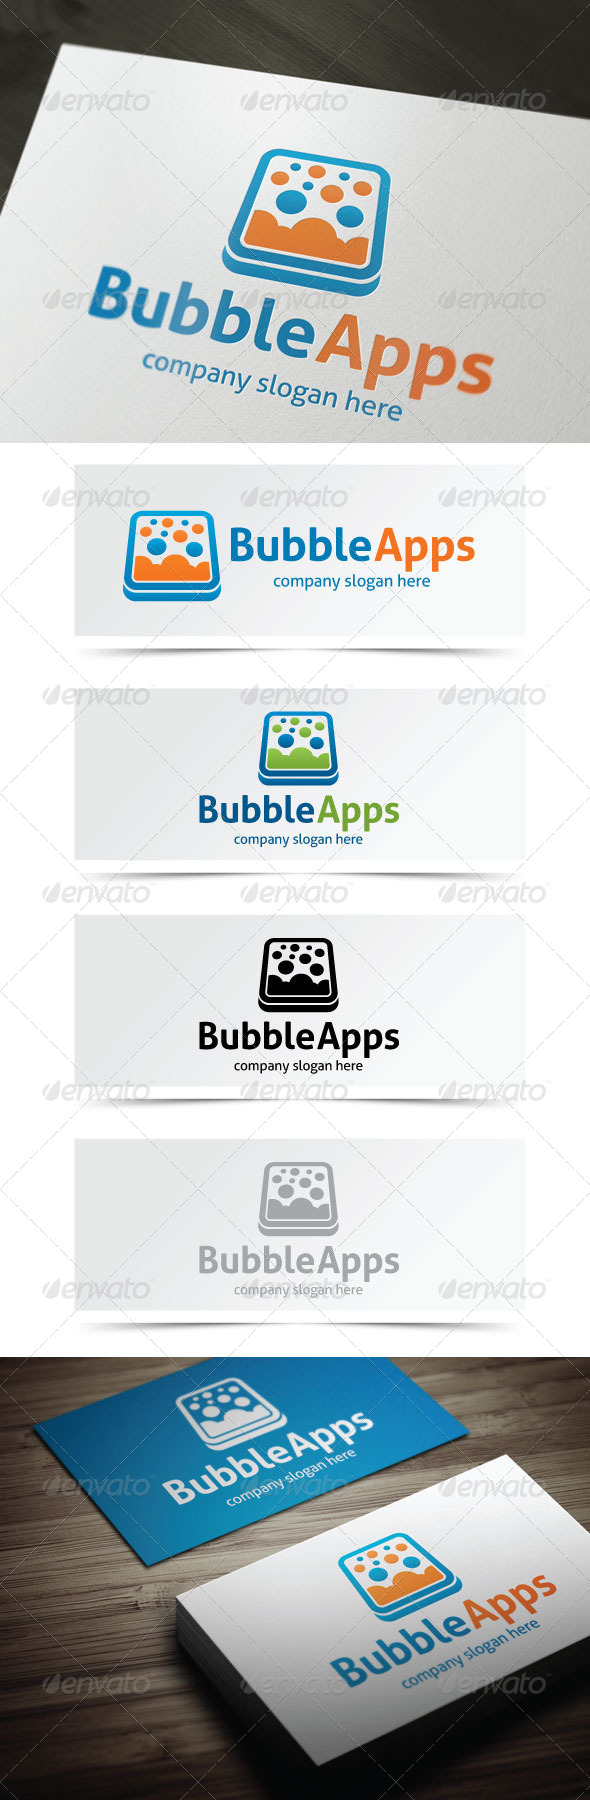 Bubble Apps